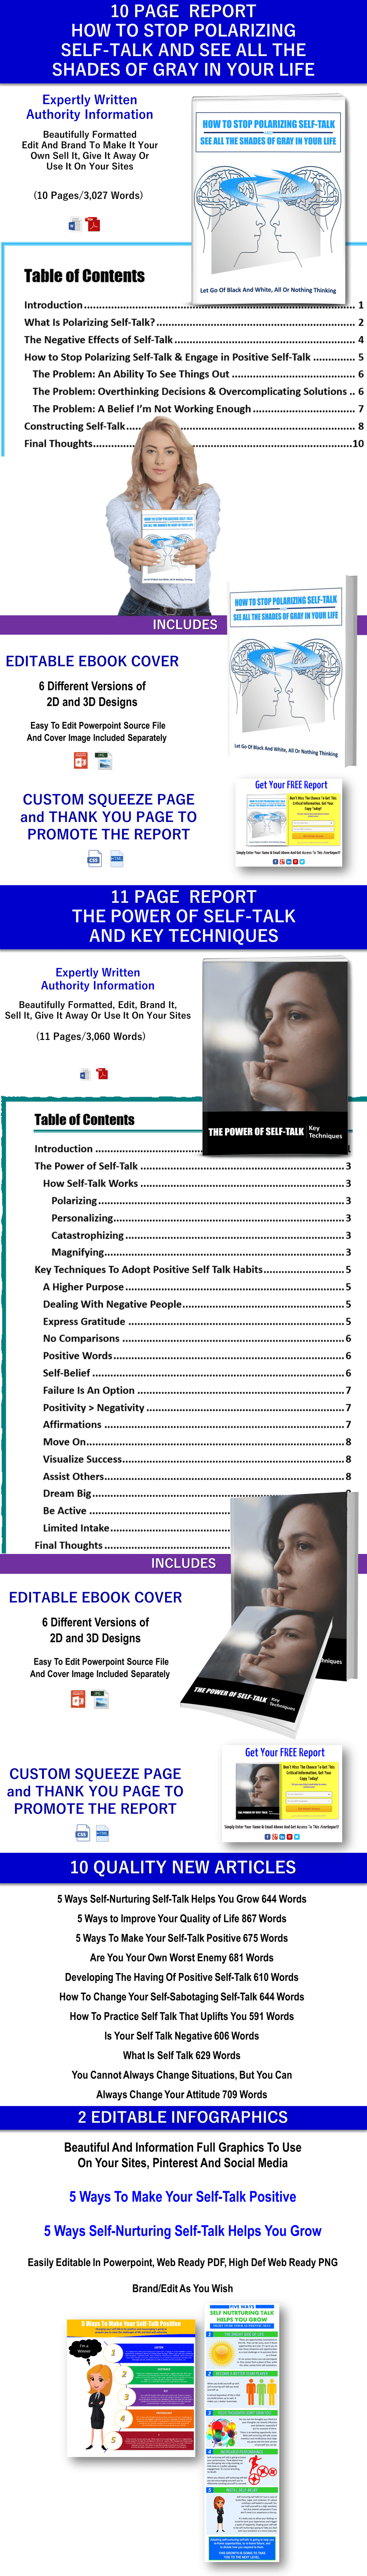 Stop Polarizing Self Talk Report, The Power Of Self Talk Report, 2 Editable Infographics and 10 Articles PLR